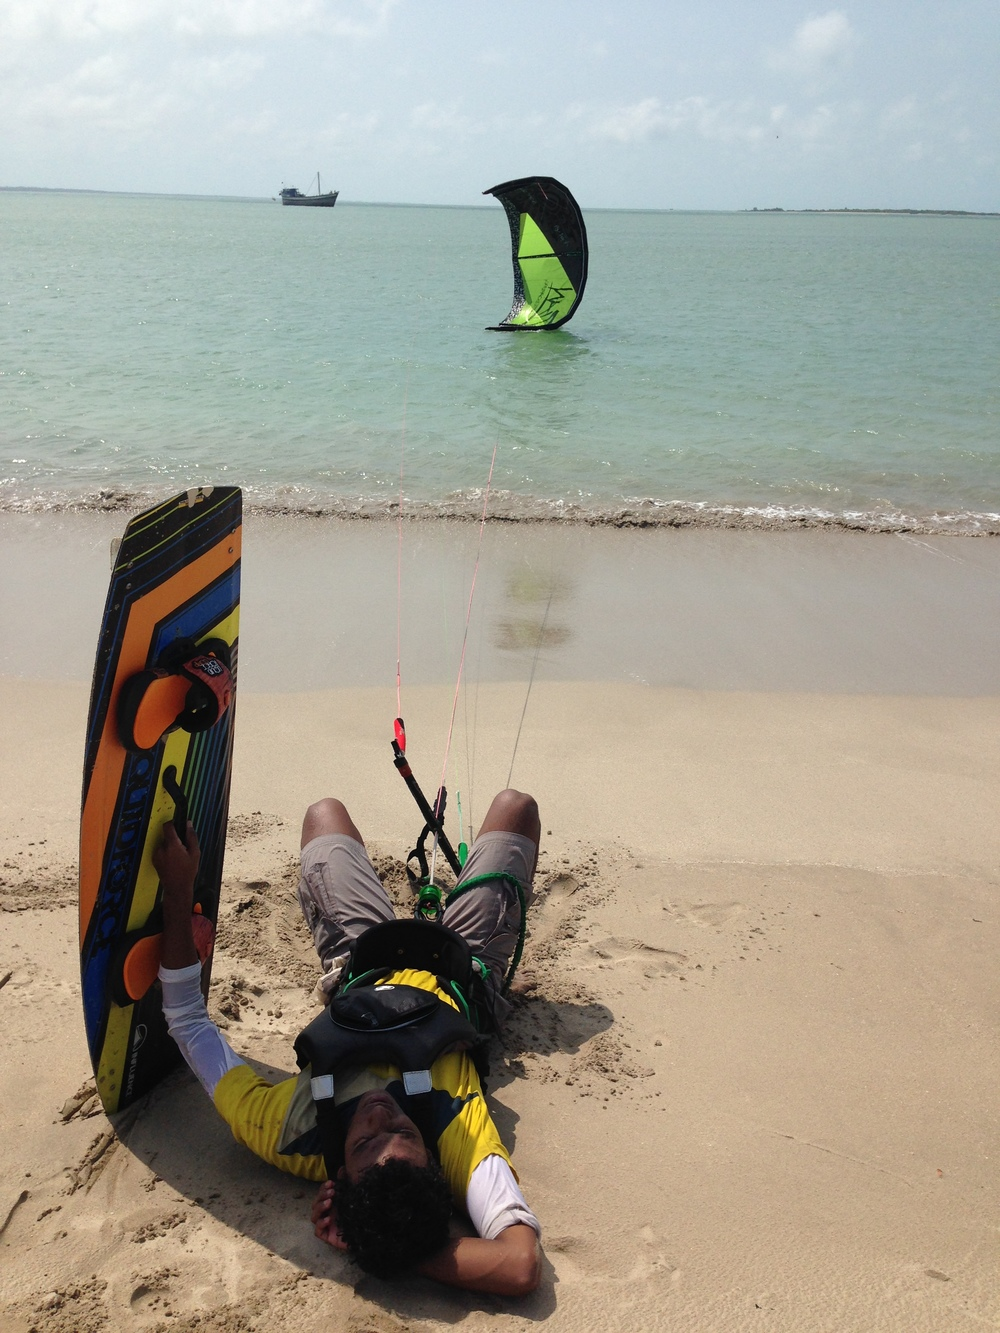 Kiteboarder from Chennai takes a break